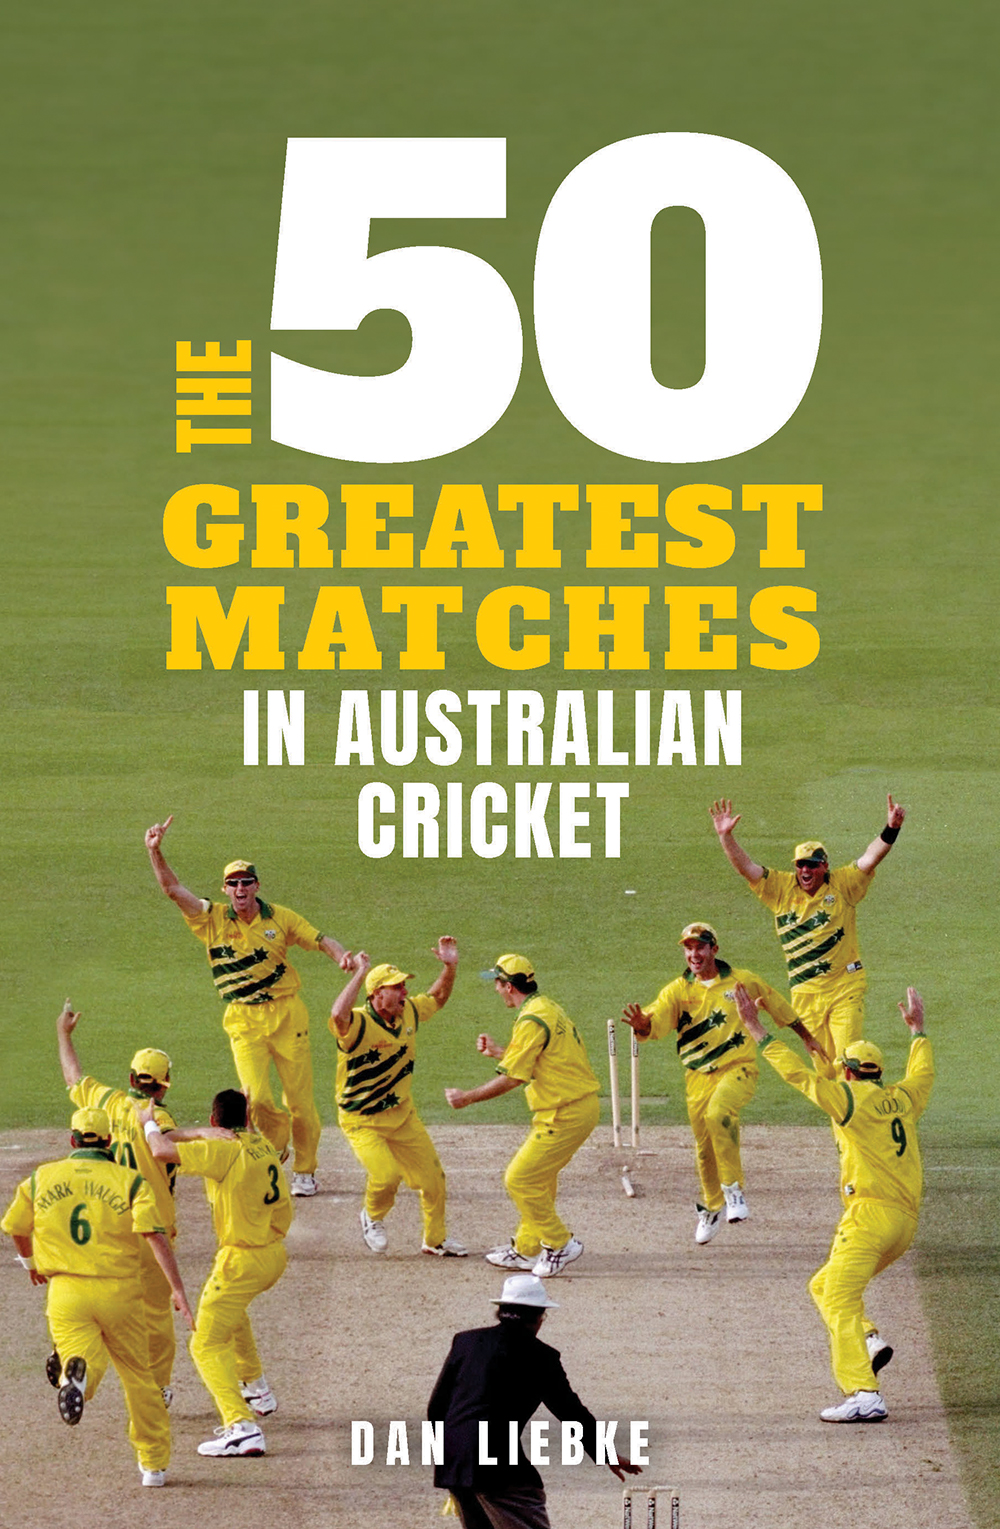 The 50 Greatest Matches in Australian Cricket Dan Liebke